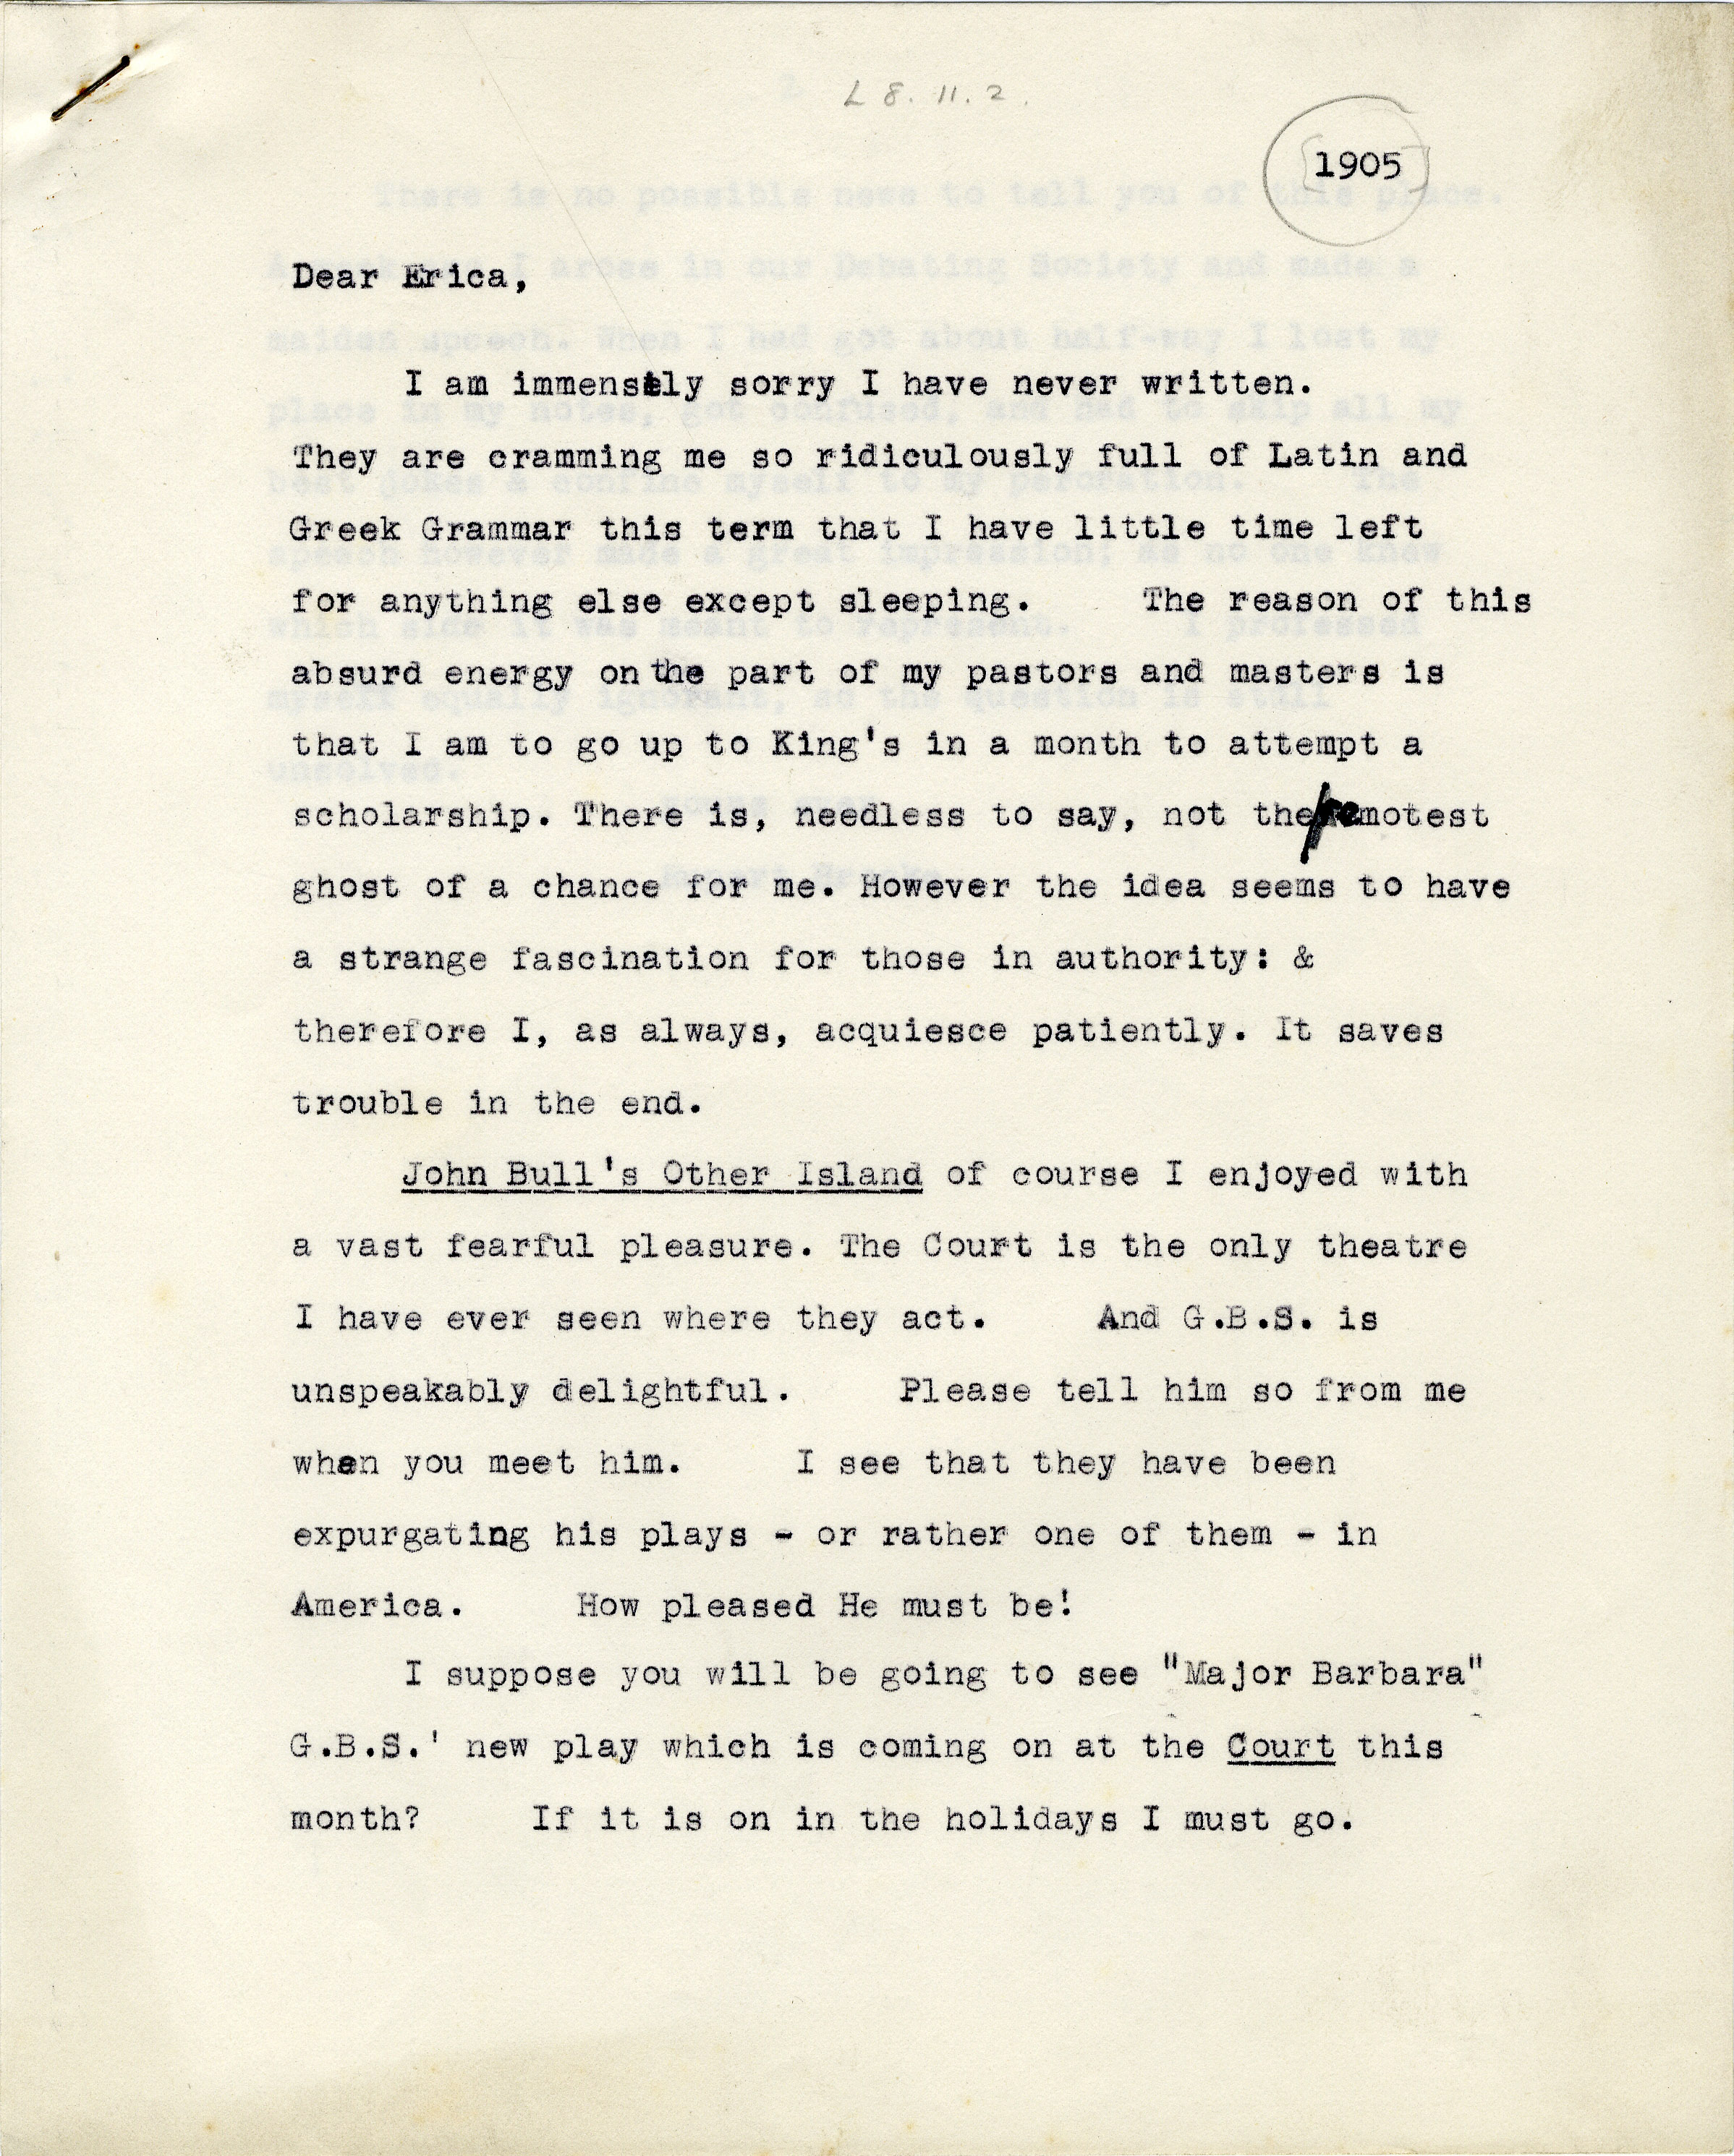 First page of a transcript of a letter from Rupert Brooke to Erica Cotterill, 1905 (RCB/L/8/11/2)